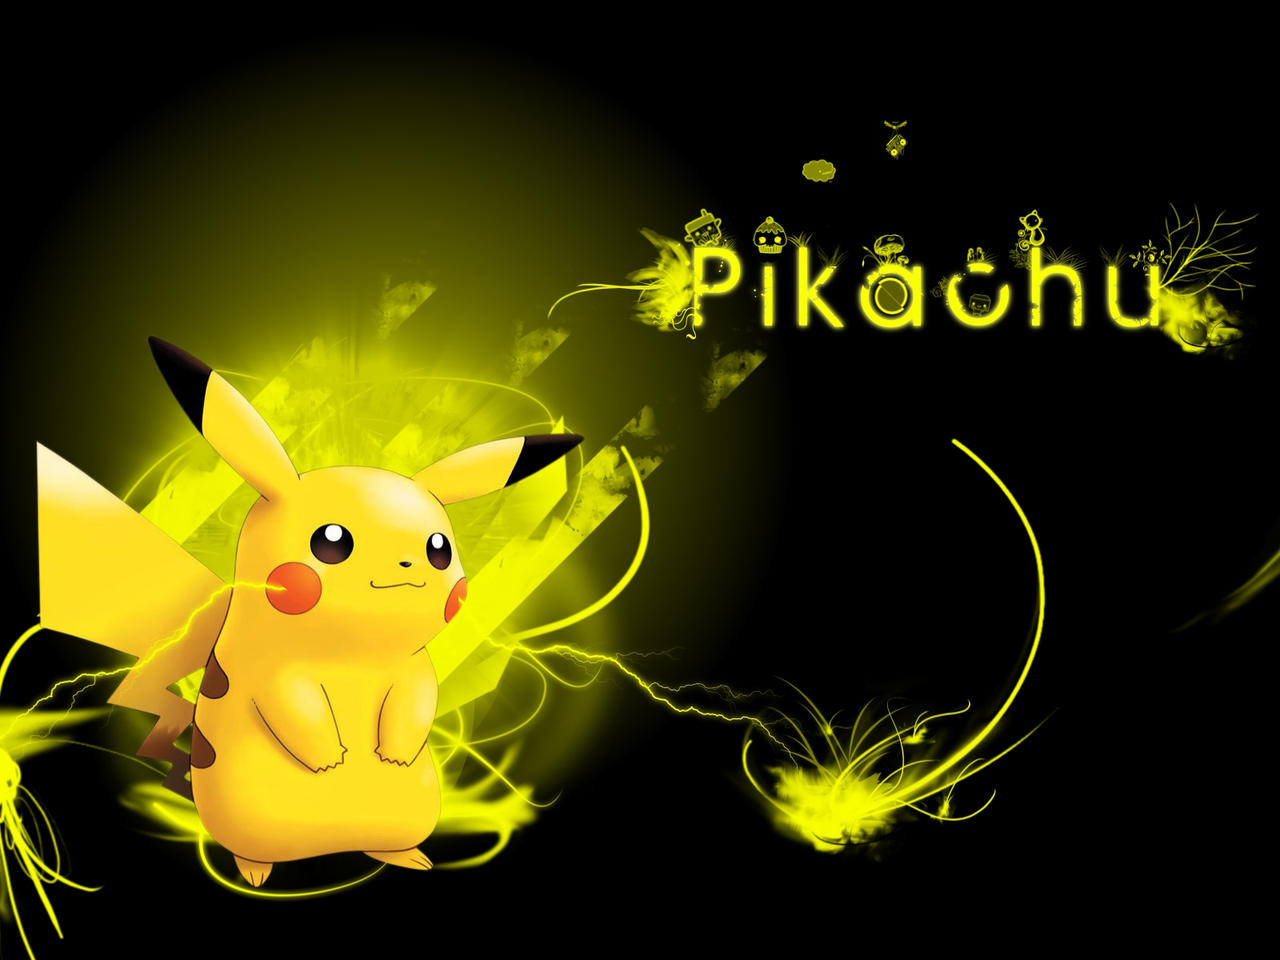 Pikachu Wallpaper By Sasori640